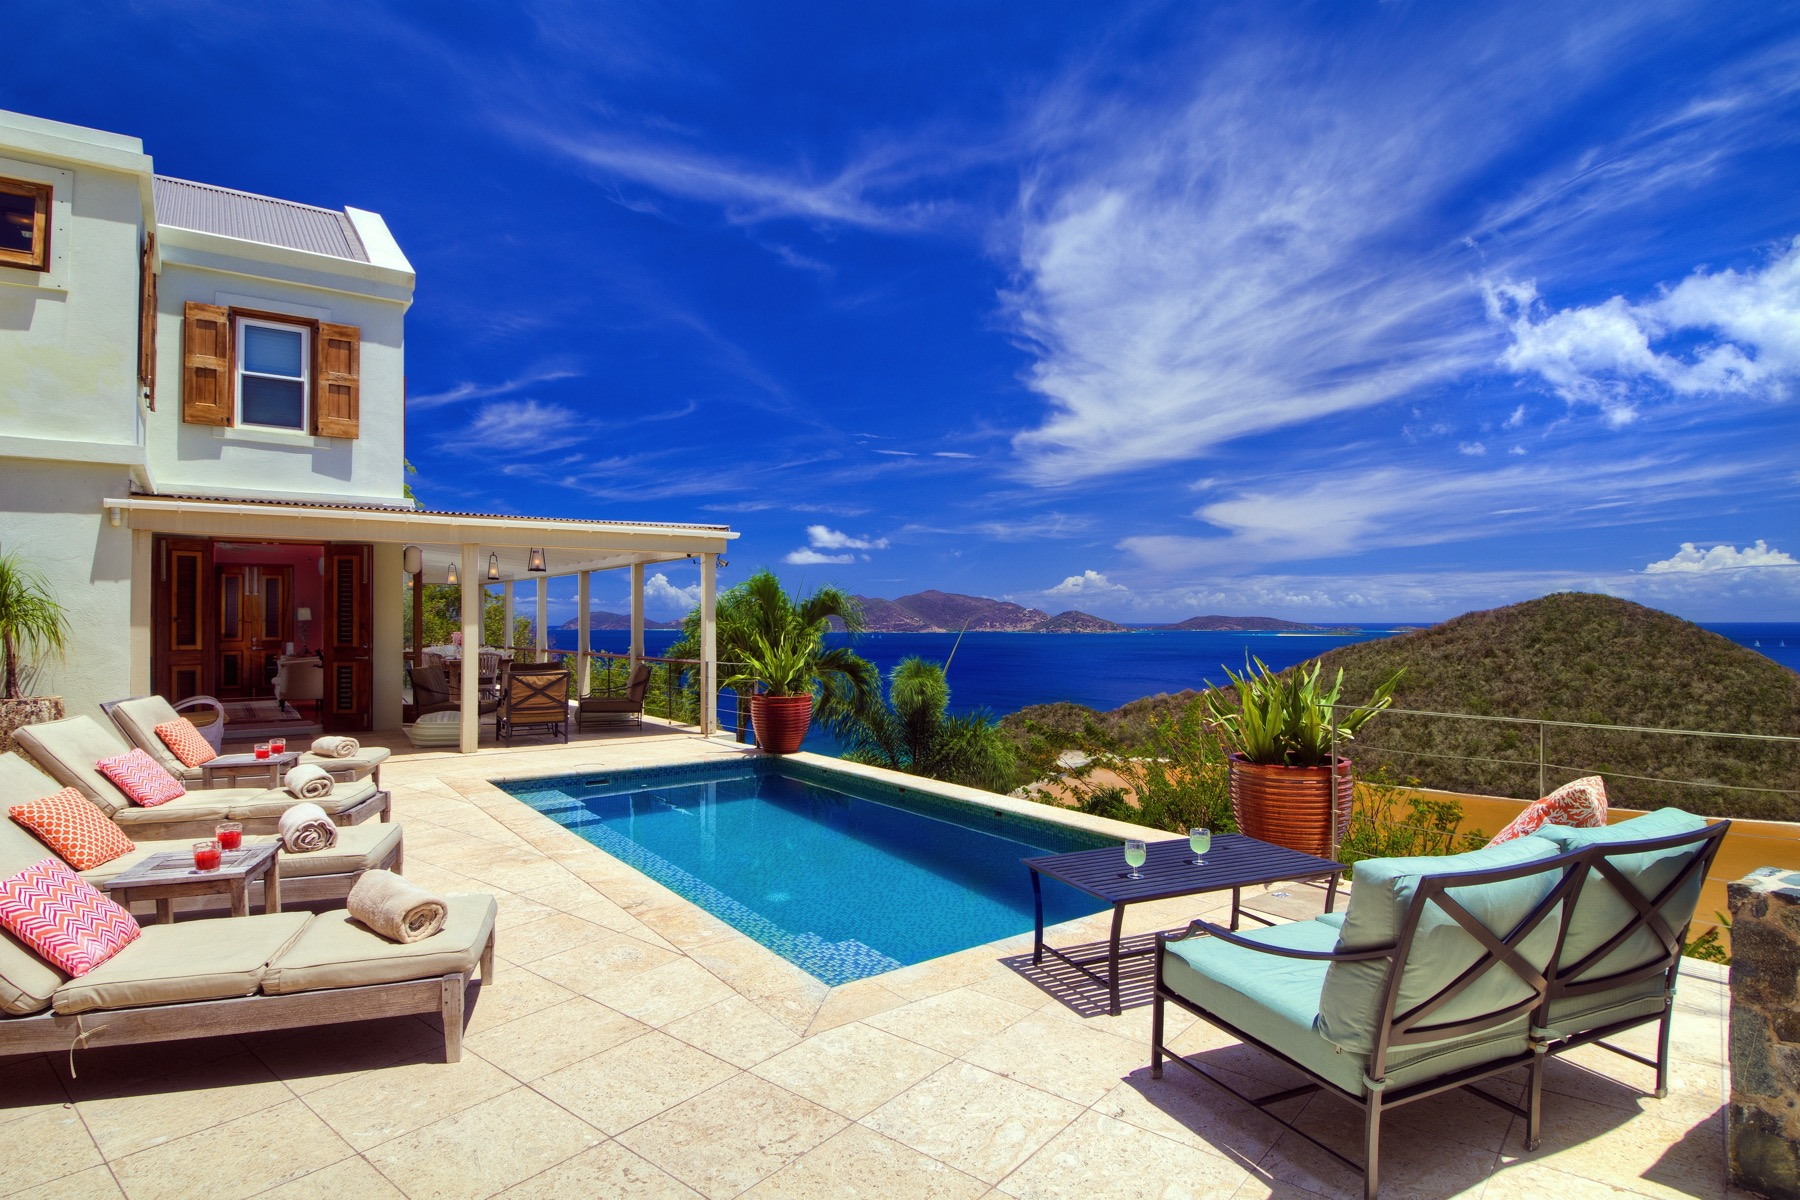 واحد منزل الأسرة للـ Sale في Cohoba House Belmont, Tortola British Virgin Islands